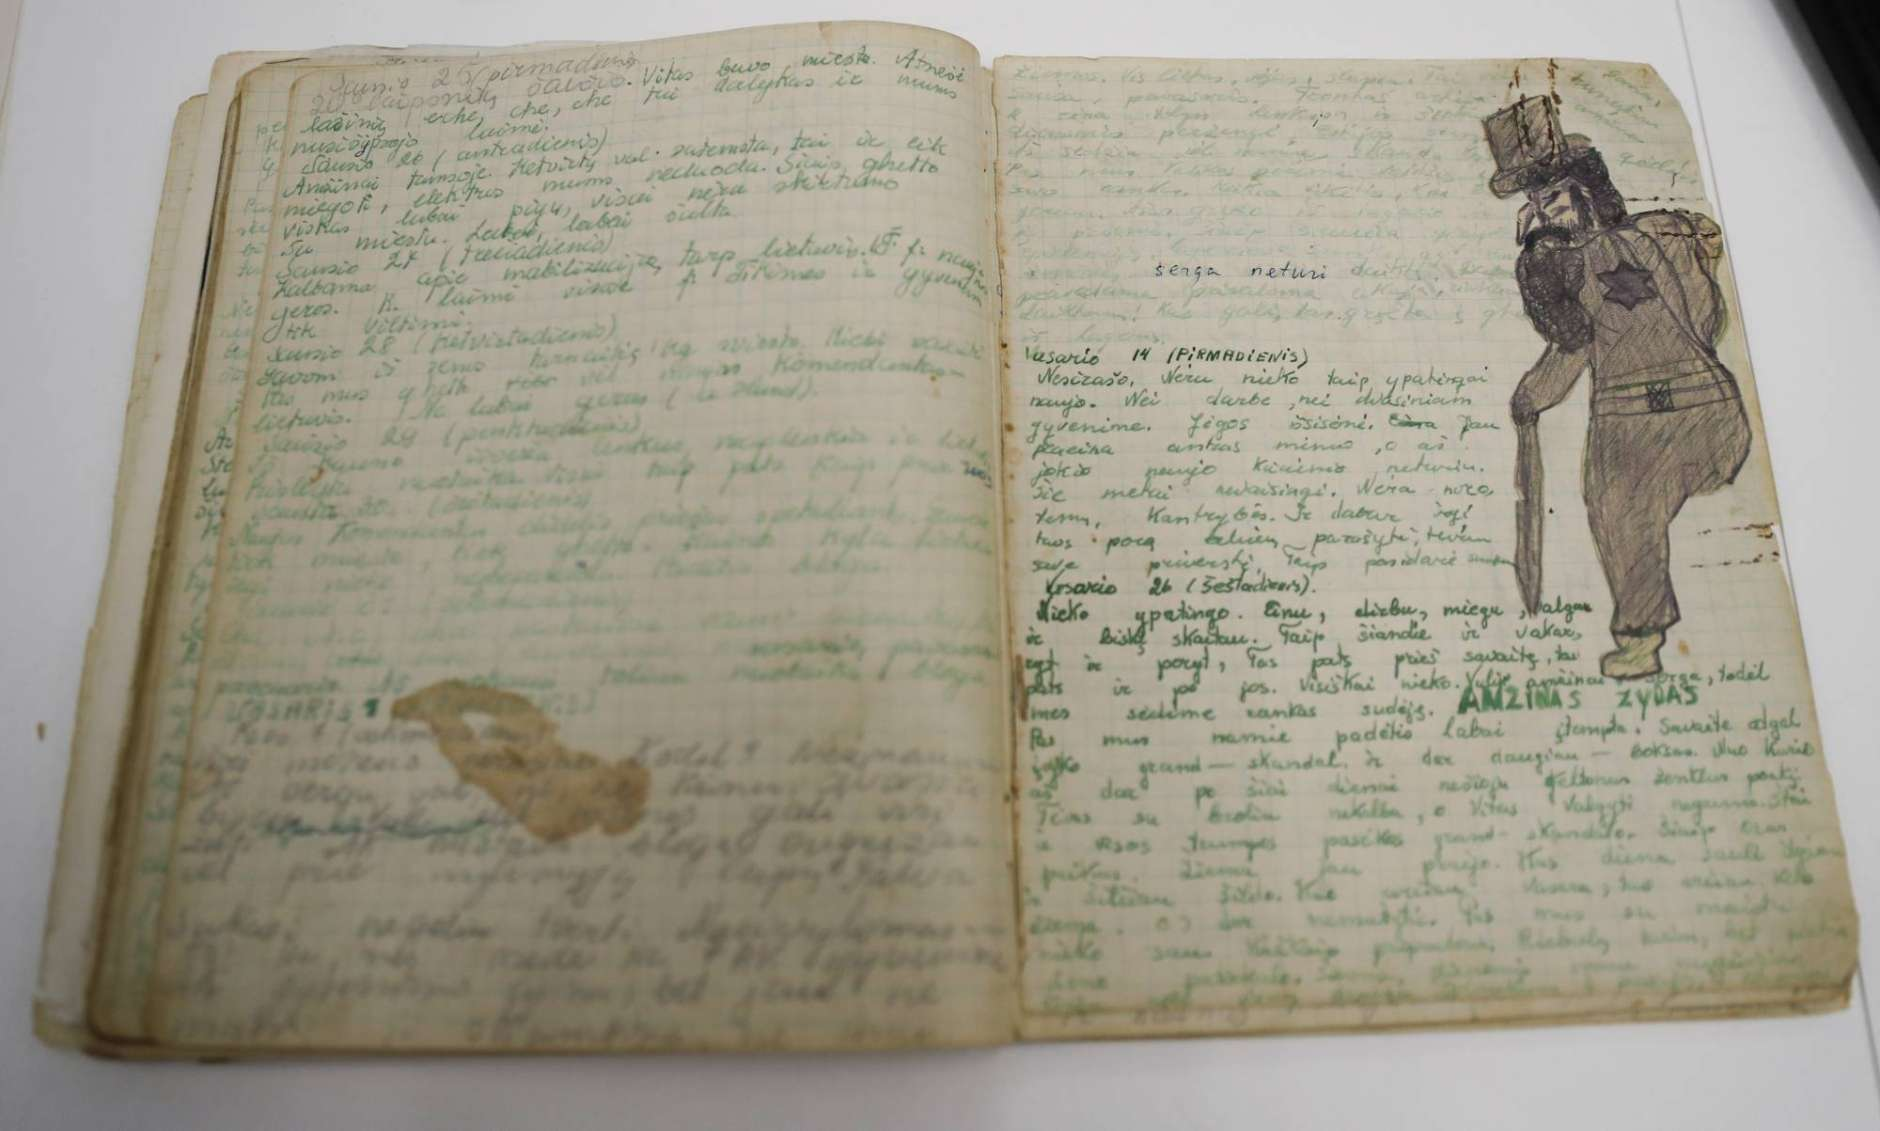 The diary of Tamara Lazerson, written during the Holocaust, is seen at the U.S. Holocaust Memorial Museum's David and Fela Shapell Family Collections, Conservation and Research Center in Bowie, Md., Monday, April 24, 2017. The Shapell Center is a new state-of-the-art facility that will house the collection of record of the Holocaust. (AP Photo/Carolyn Kaster)